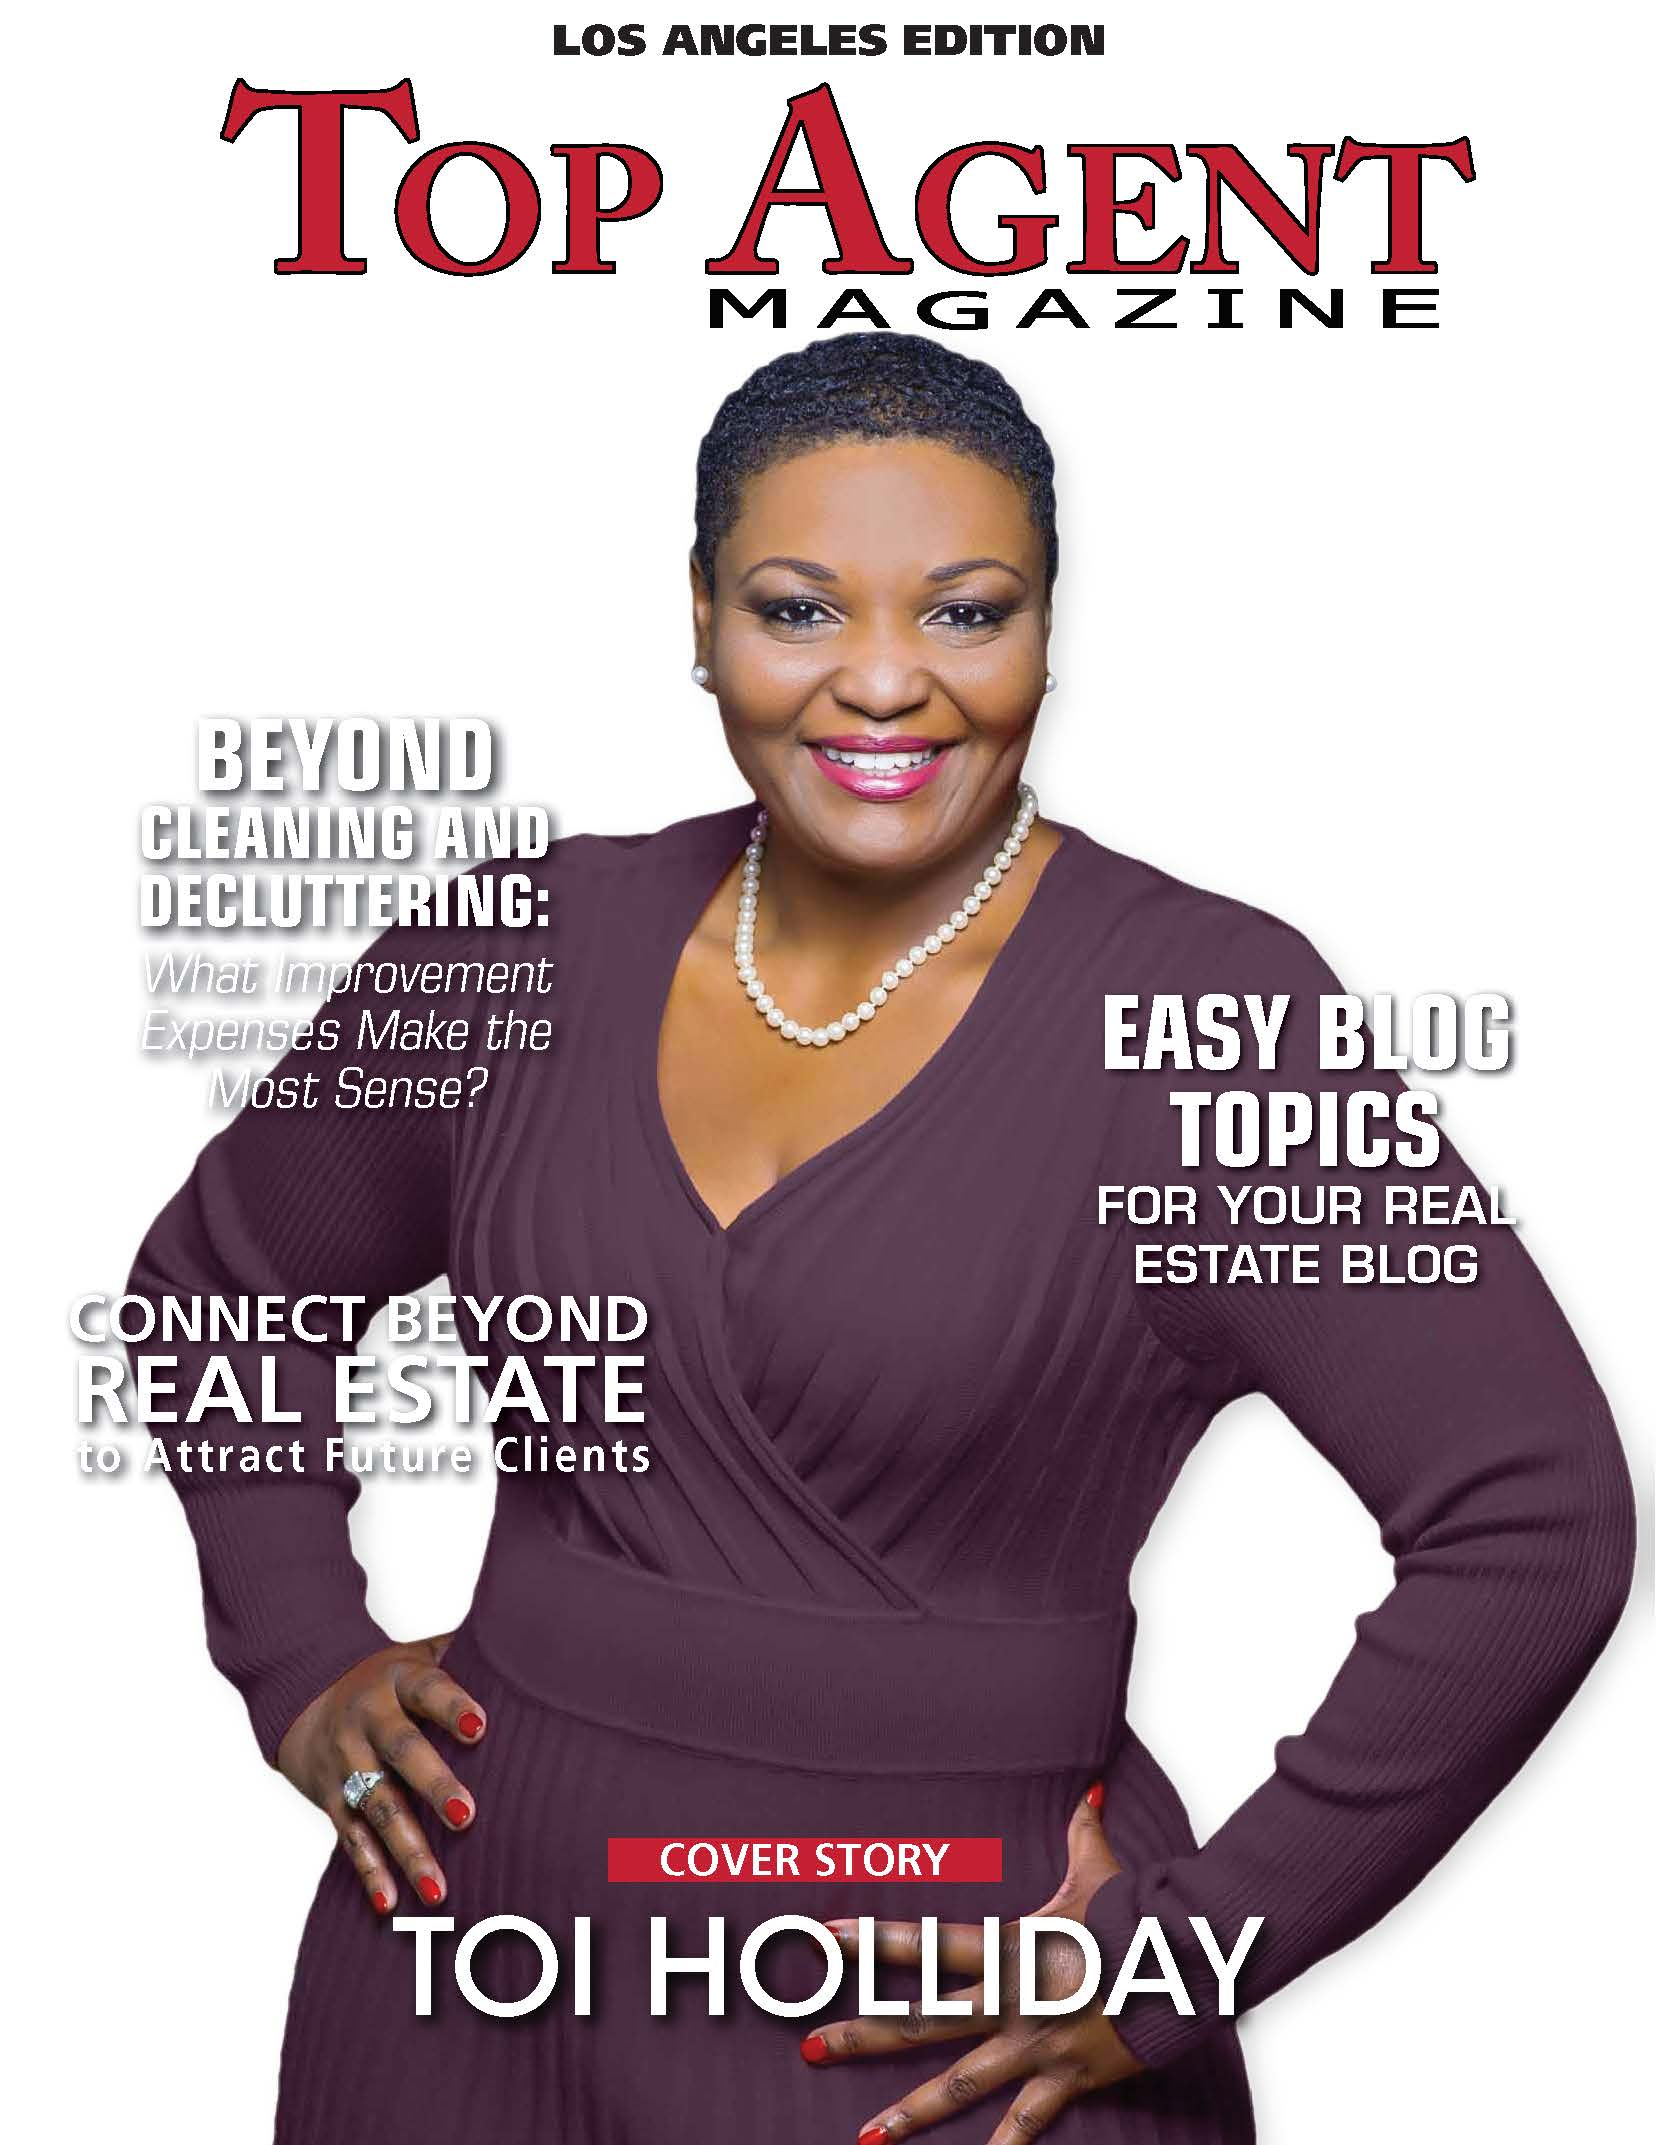 Toi Holliday was Featured in the Los Angeles Edition of Top Agent Magazine